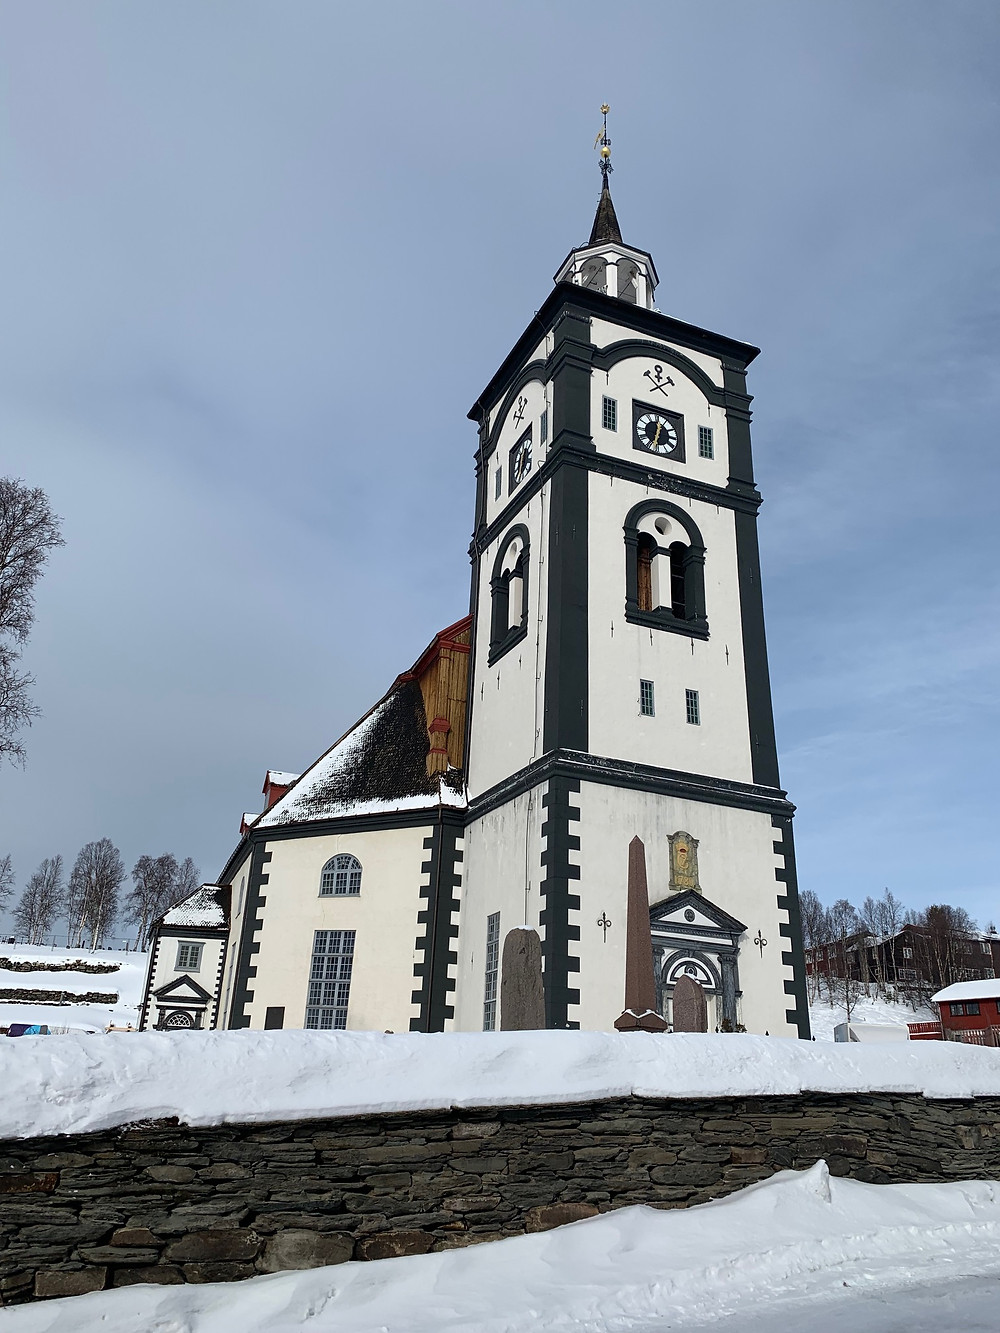 The church in historic Røros, Norway.